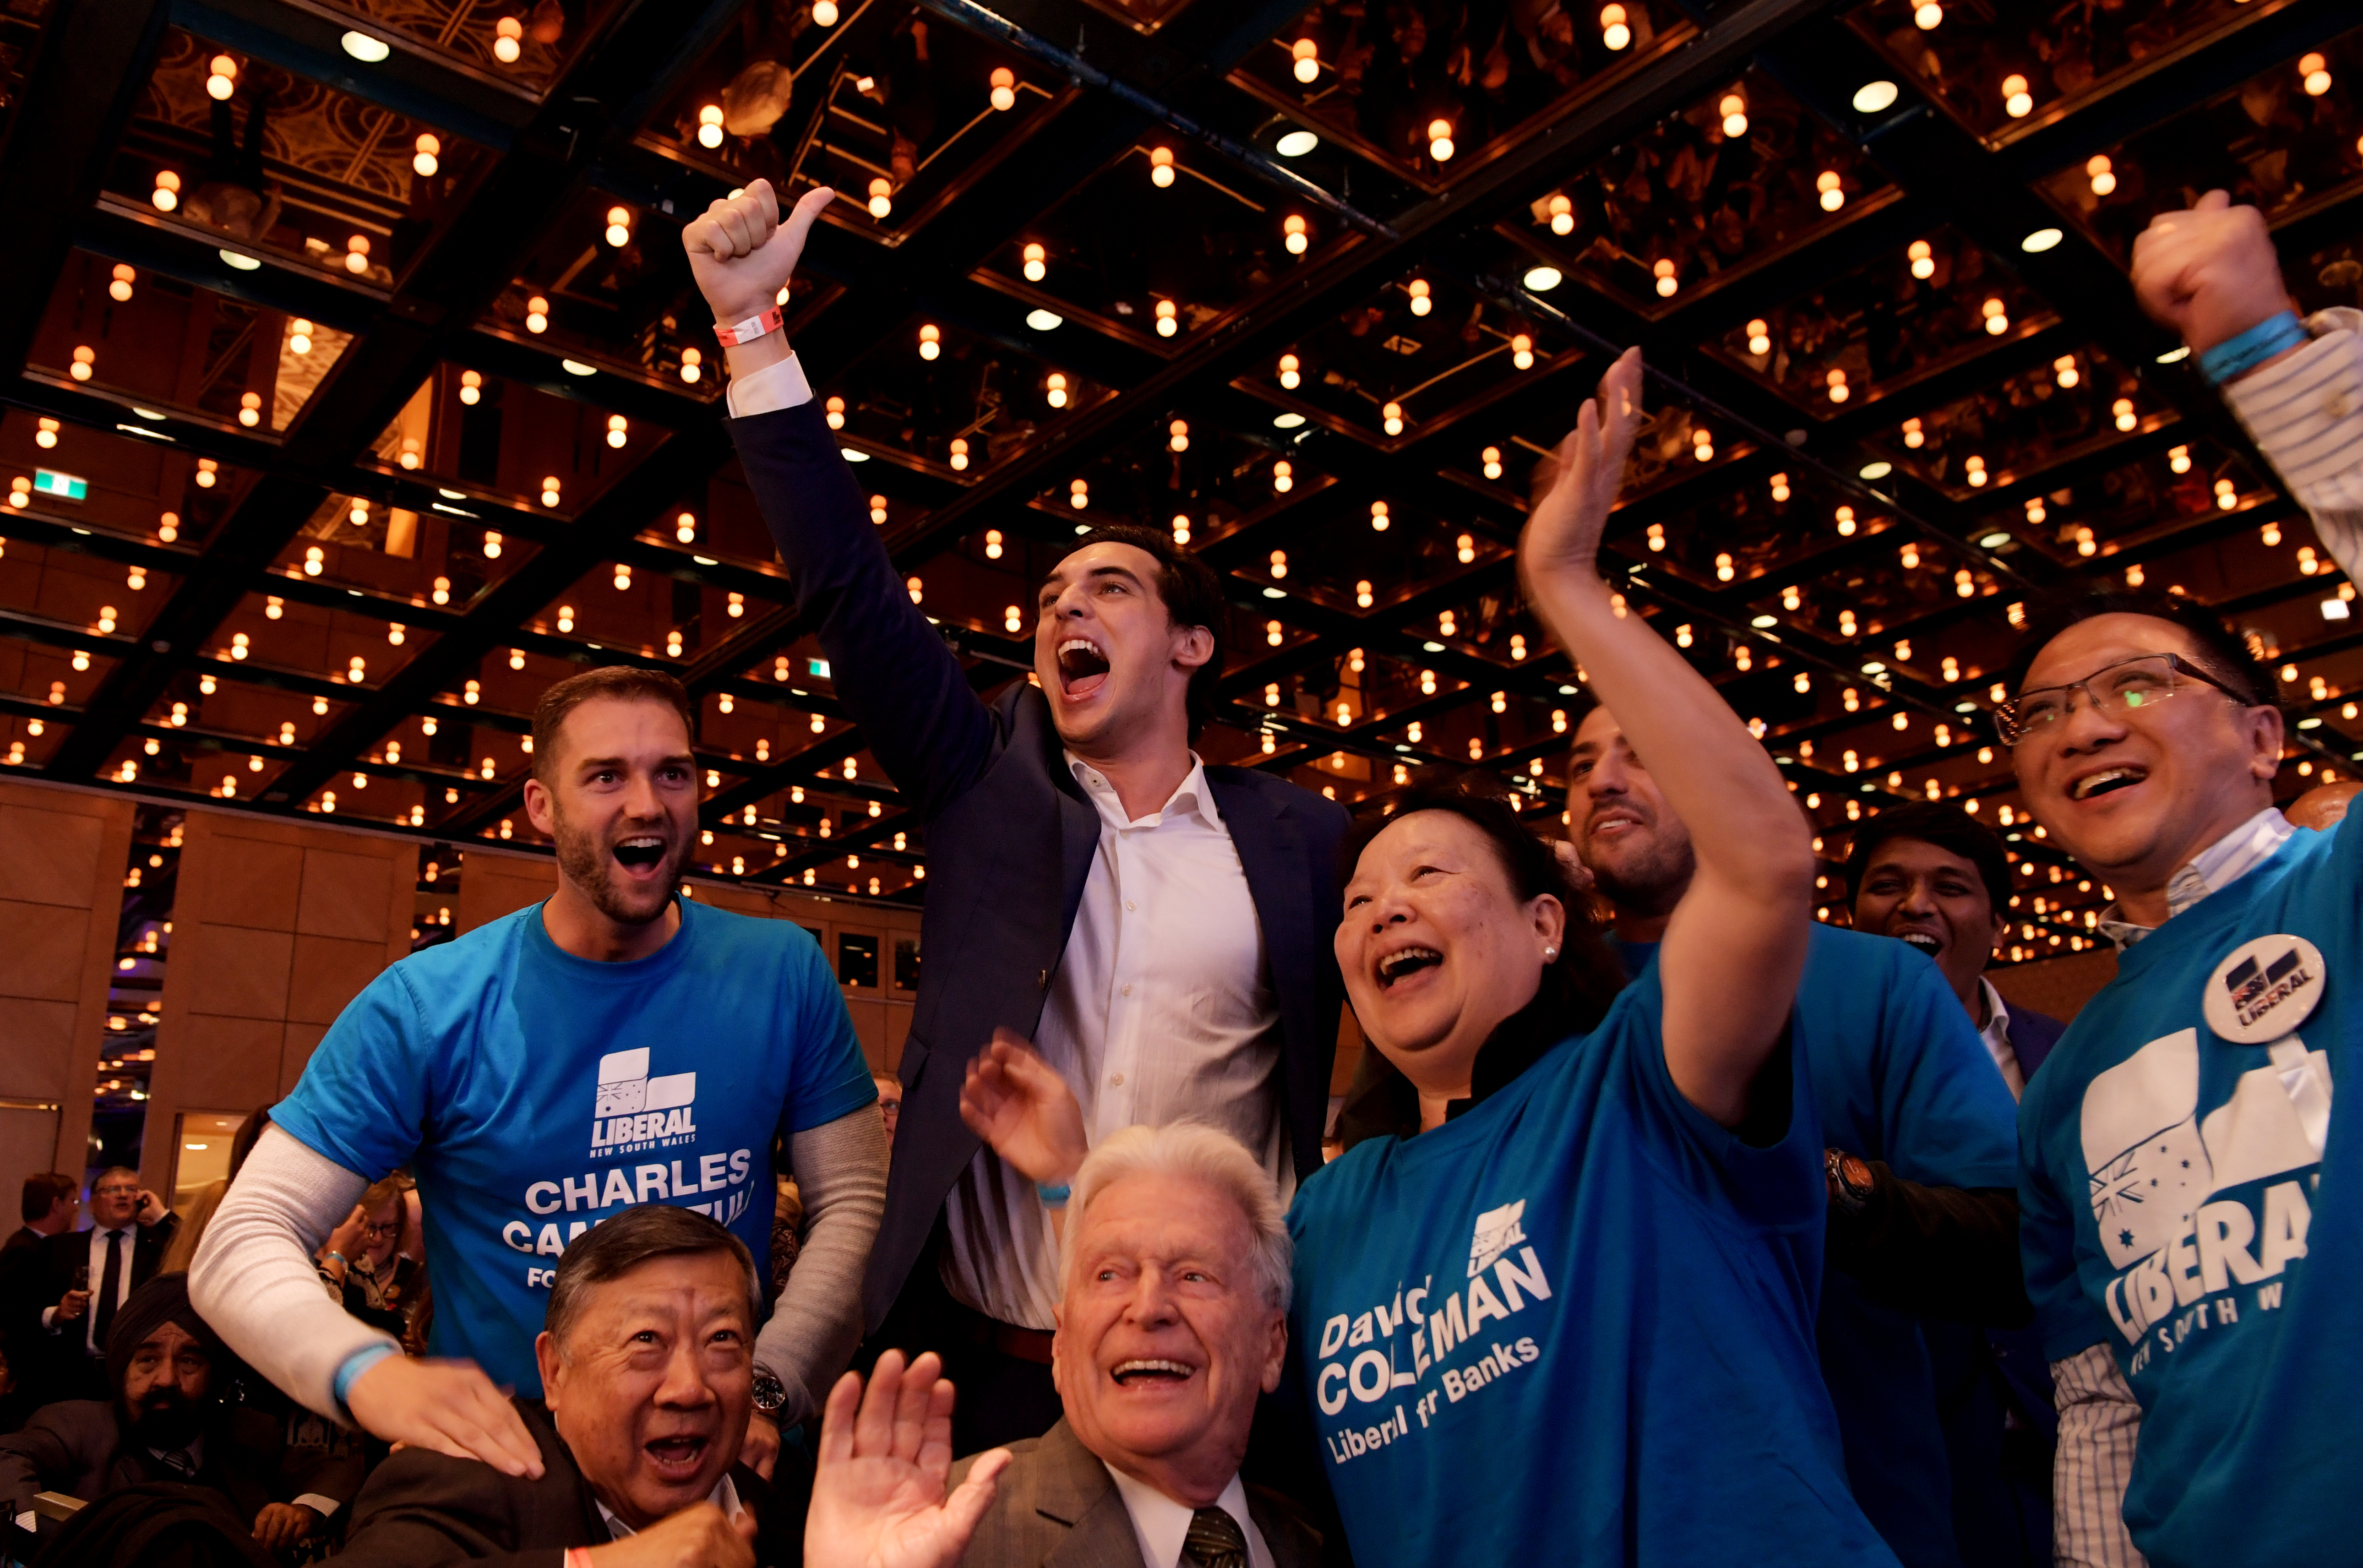 Scott Morrison supporters celebrate at the coalition's election party in Sydney on May 18.